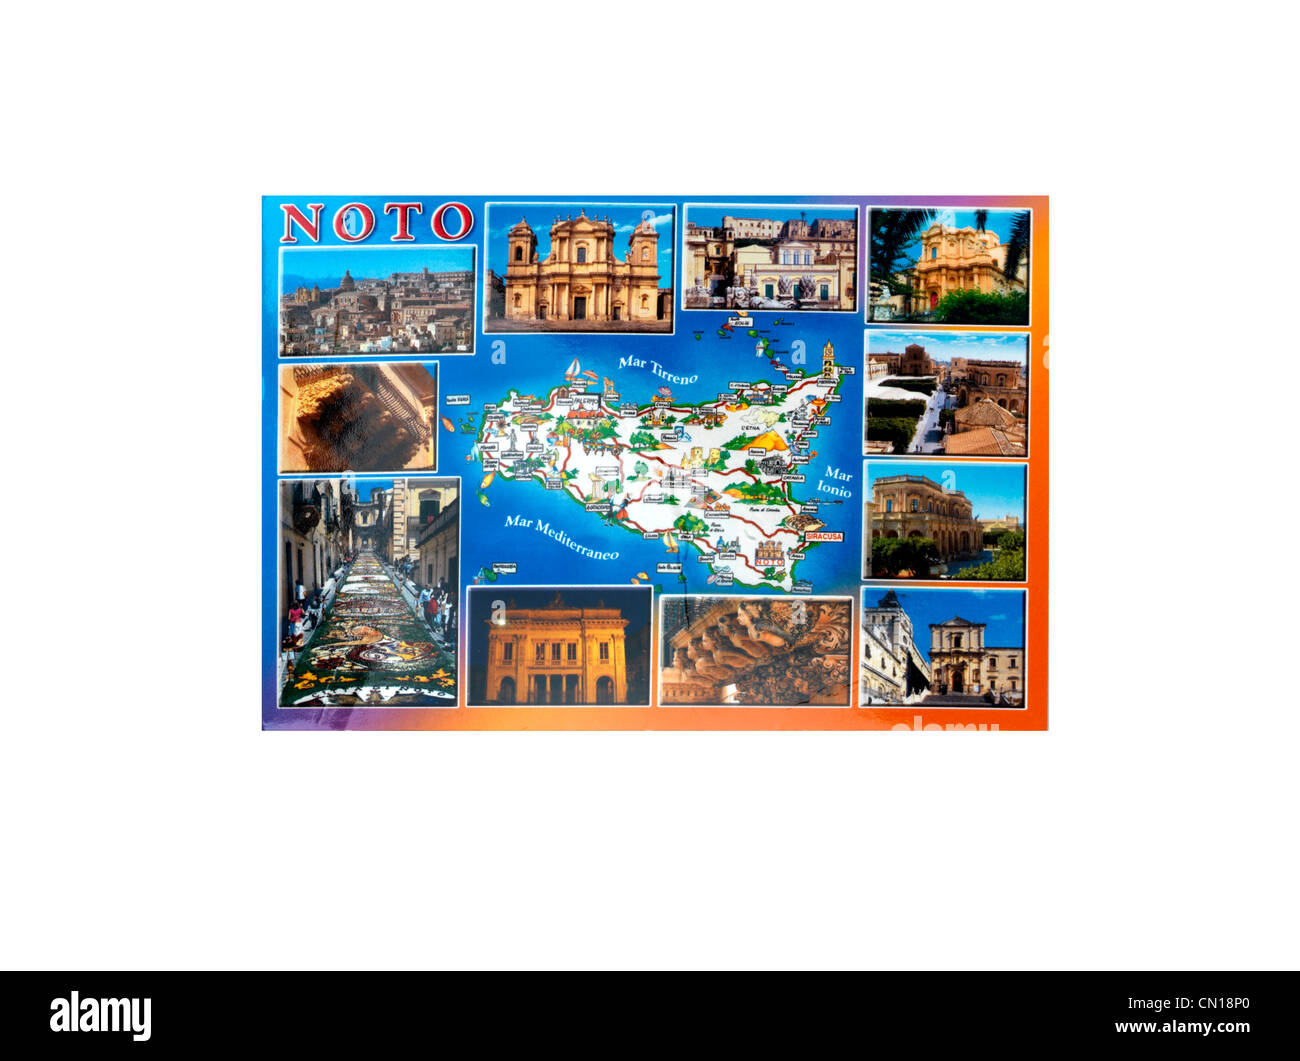 Postcard From Noto Sicily Italy - Stock Image